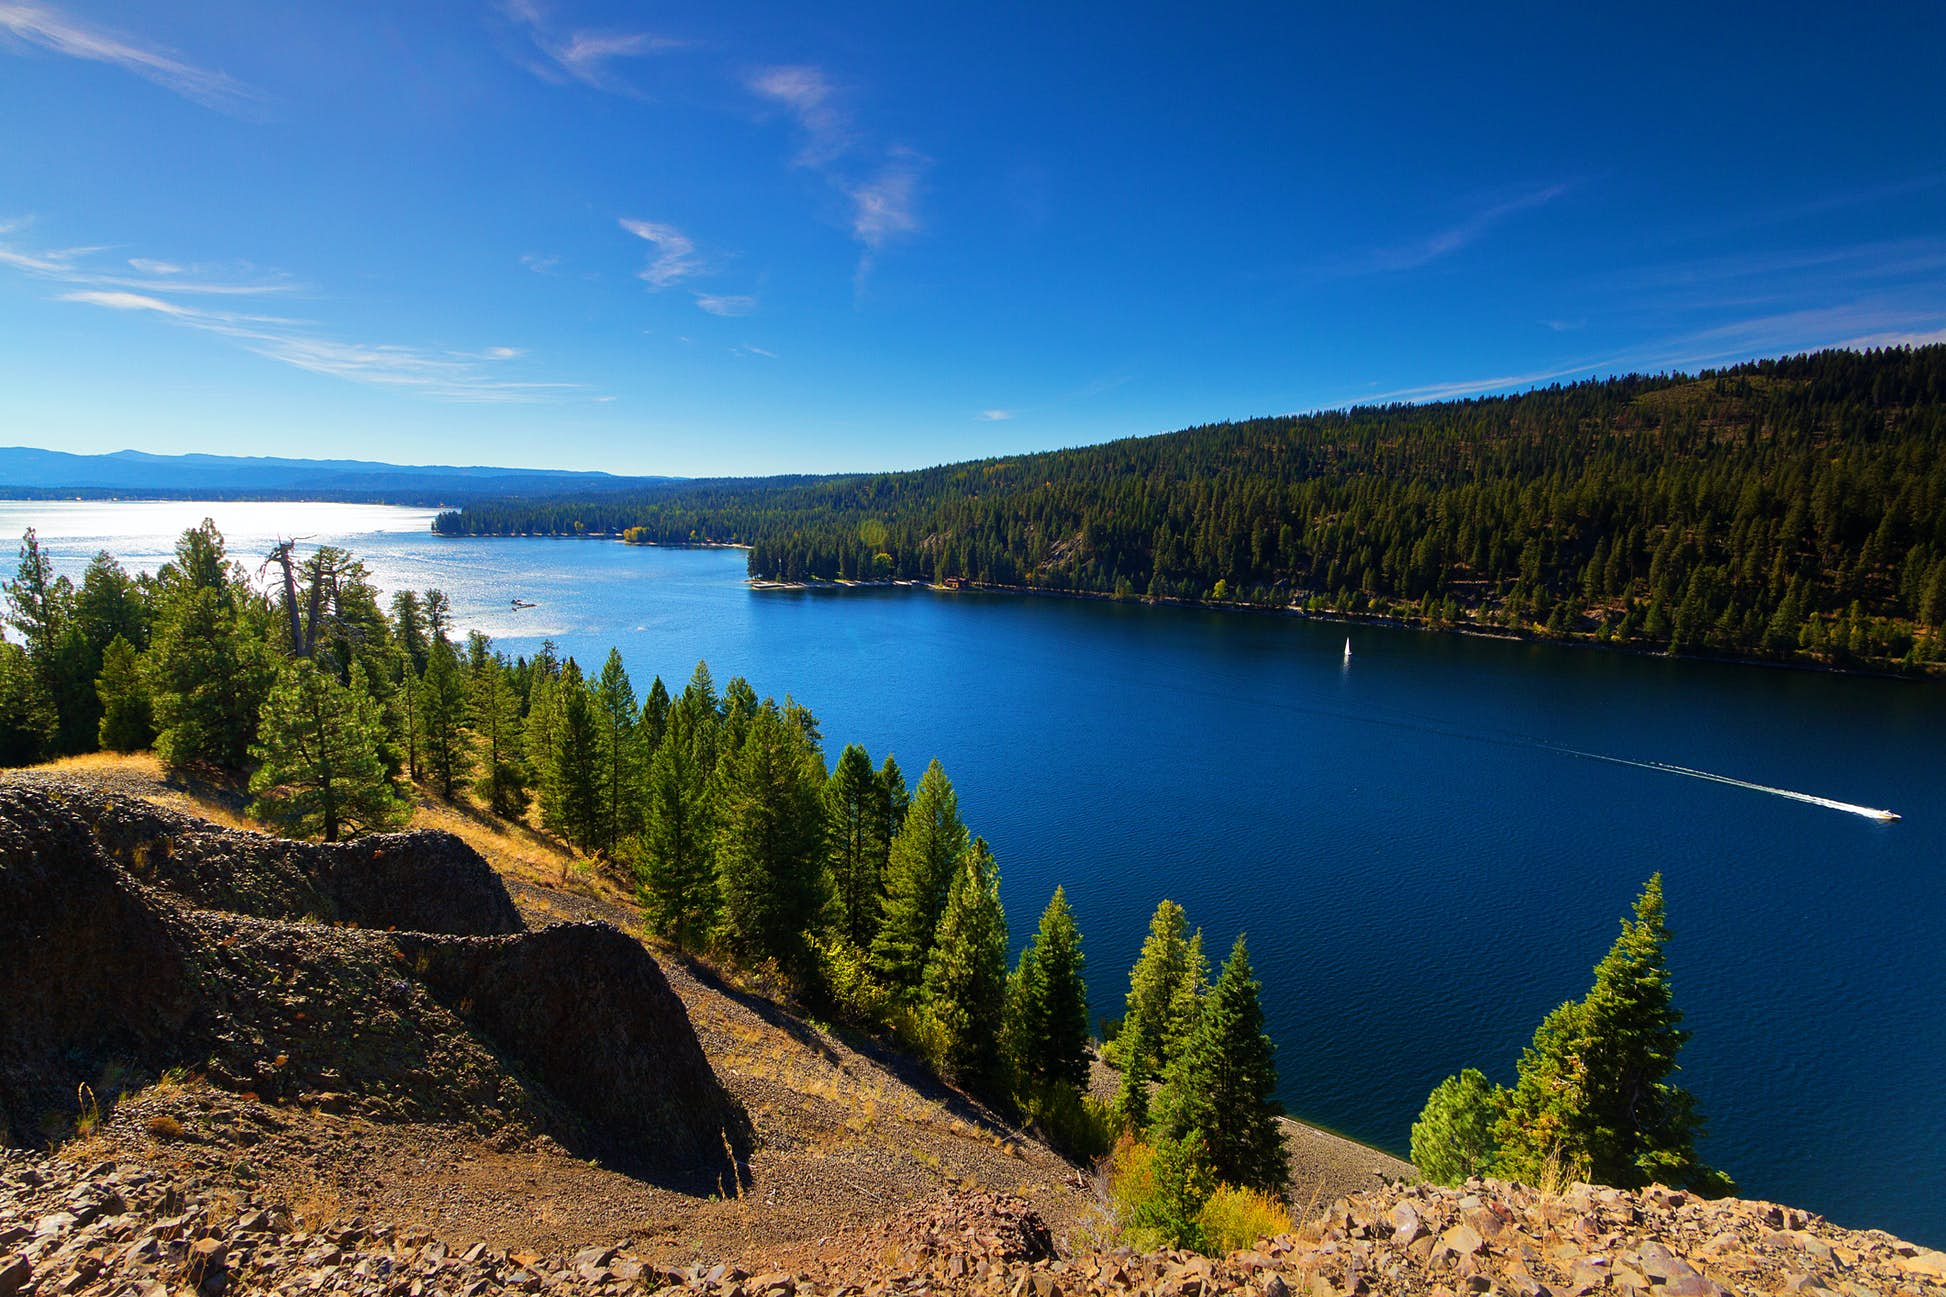 Explore the shores of Lake Payette, McCall © Anna Gorin / Getty Images